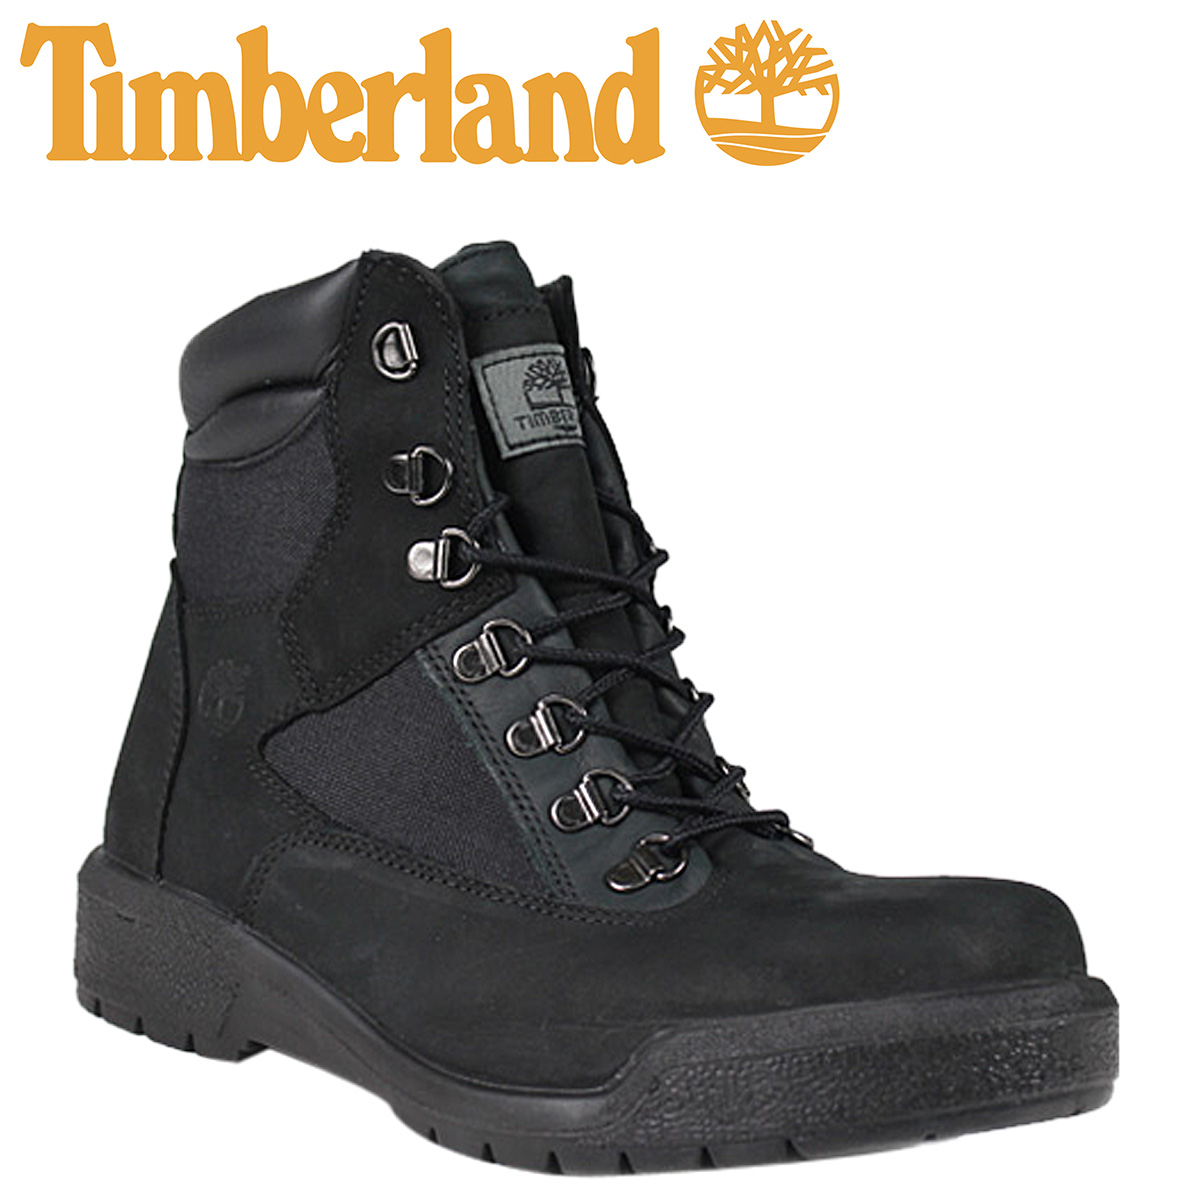 c26d30b93e3e Timberland Timberland 6 inch field boots black nylon leather mens shoes  work boots nylon leather NYLON LEATHER BLACK